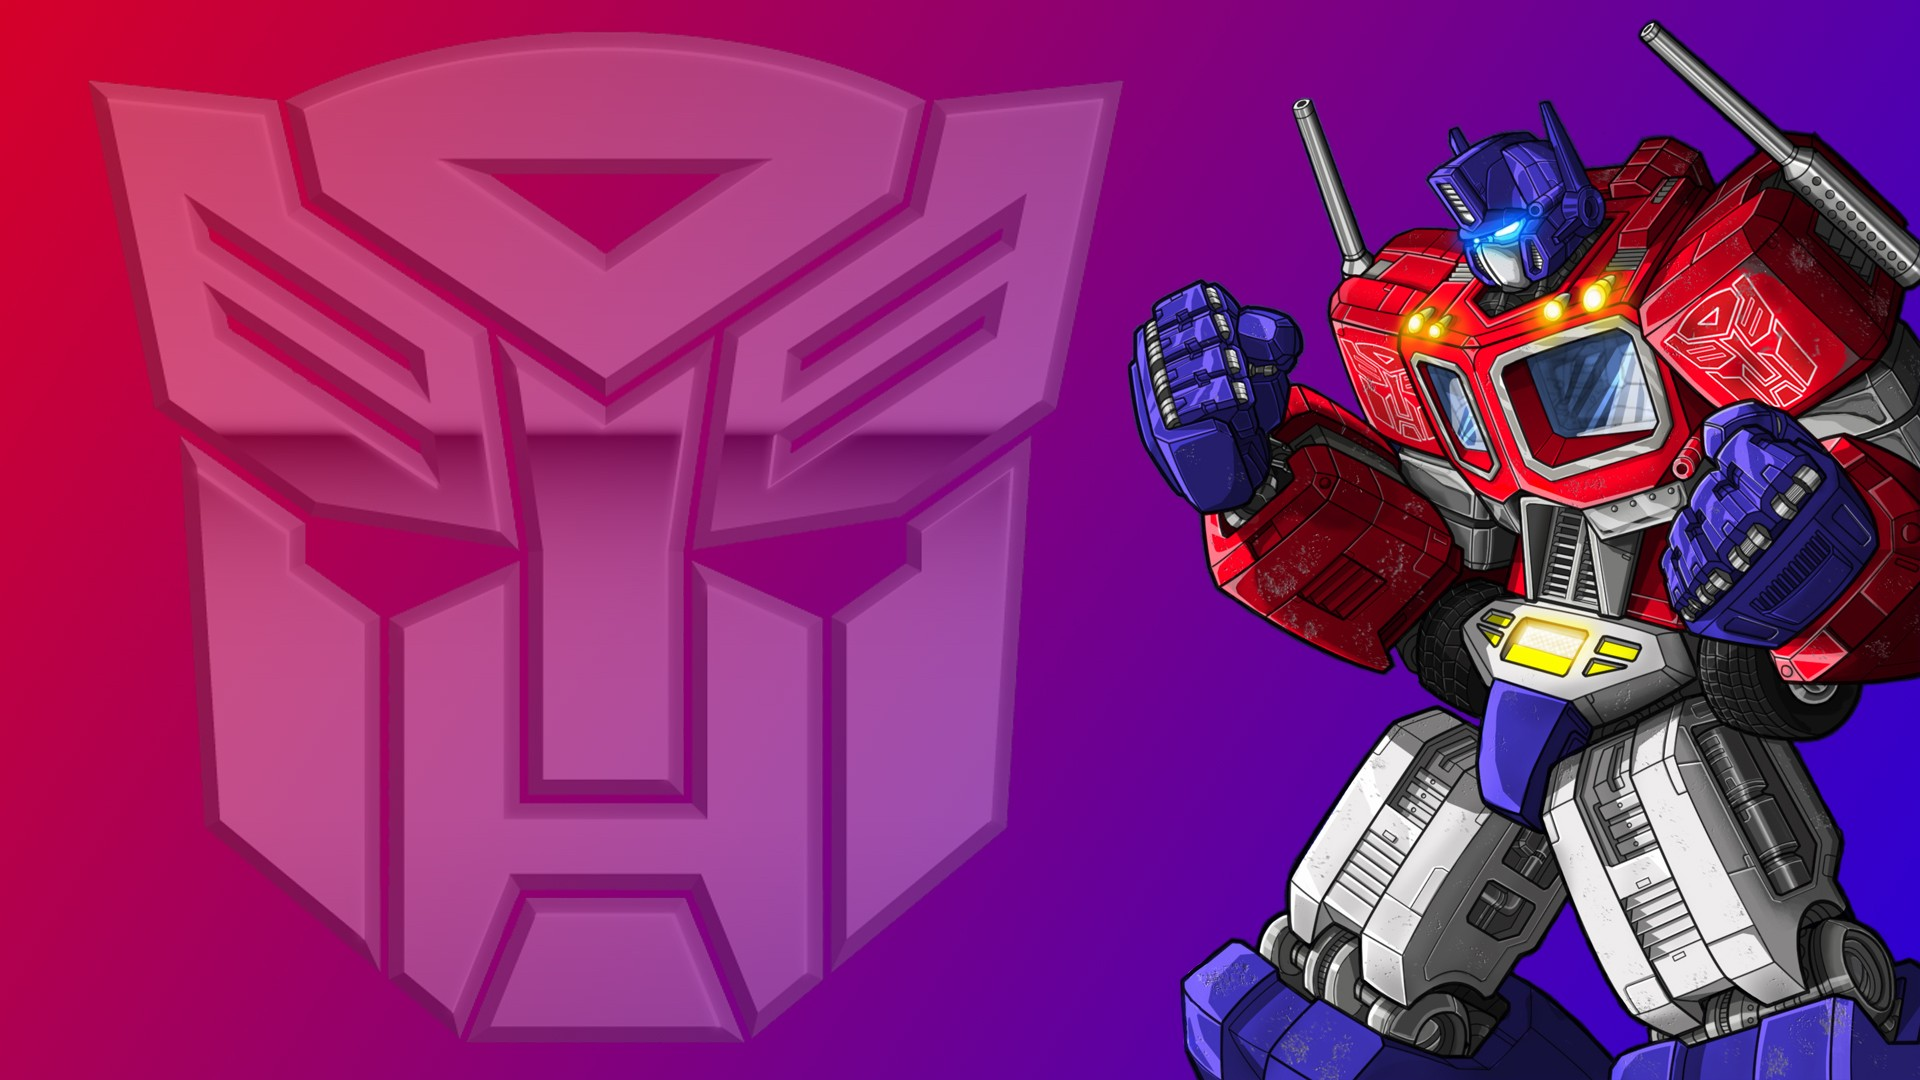 1 transformers autobots hd wallpapers | background images